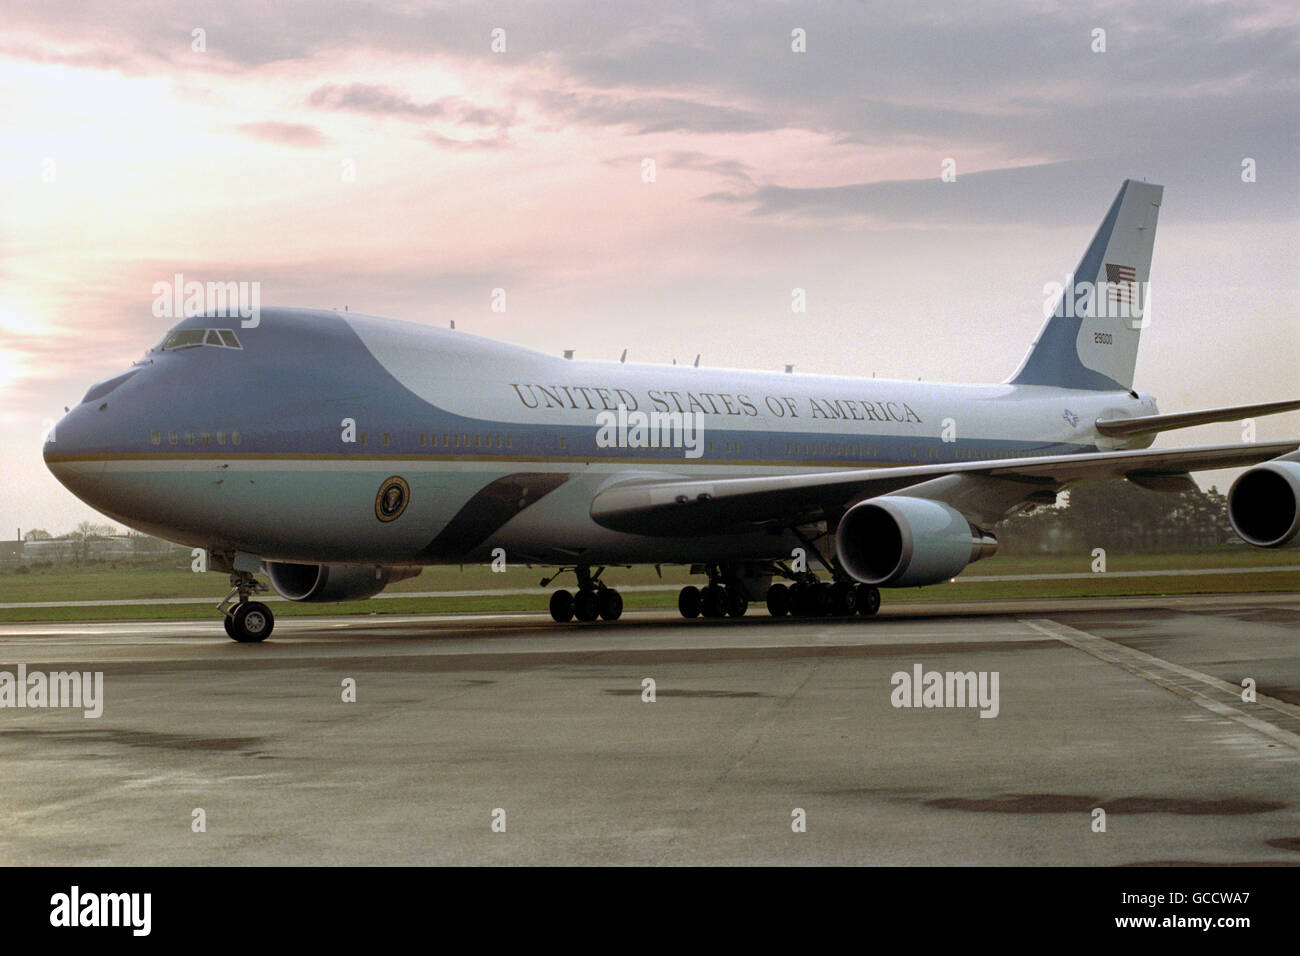 Air Force 1 Presidential Plane Stock Photo Alamy